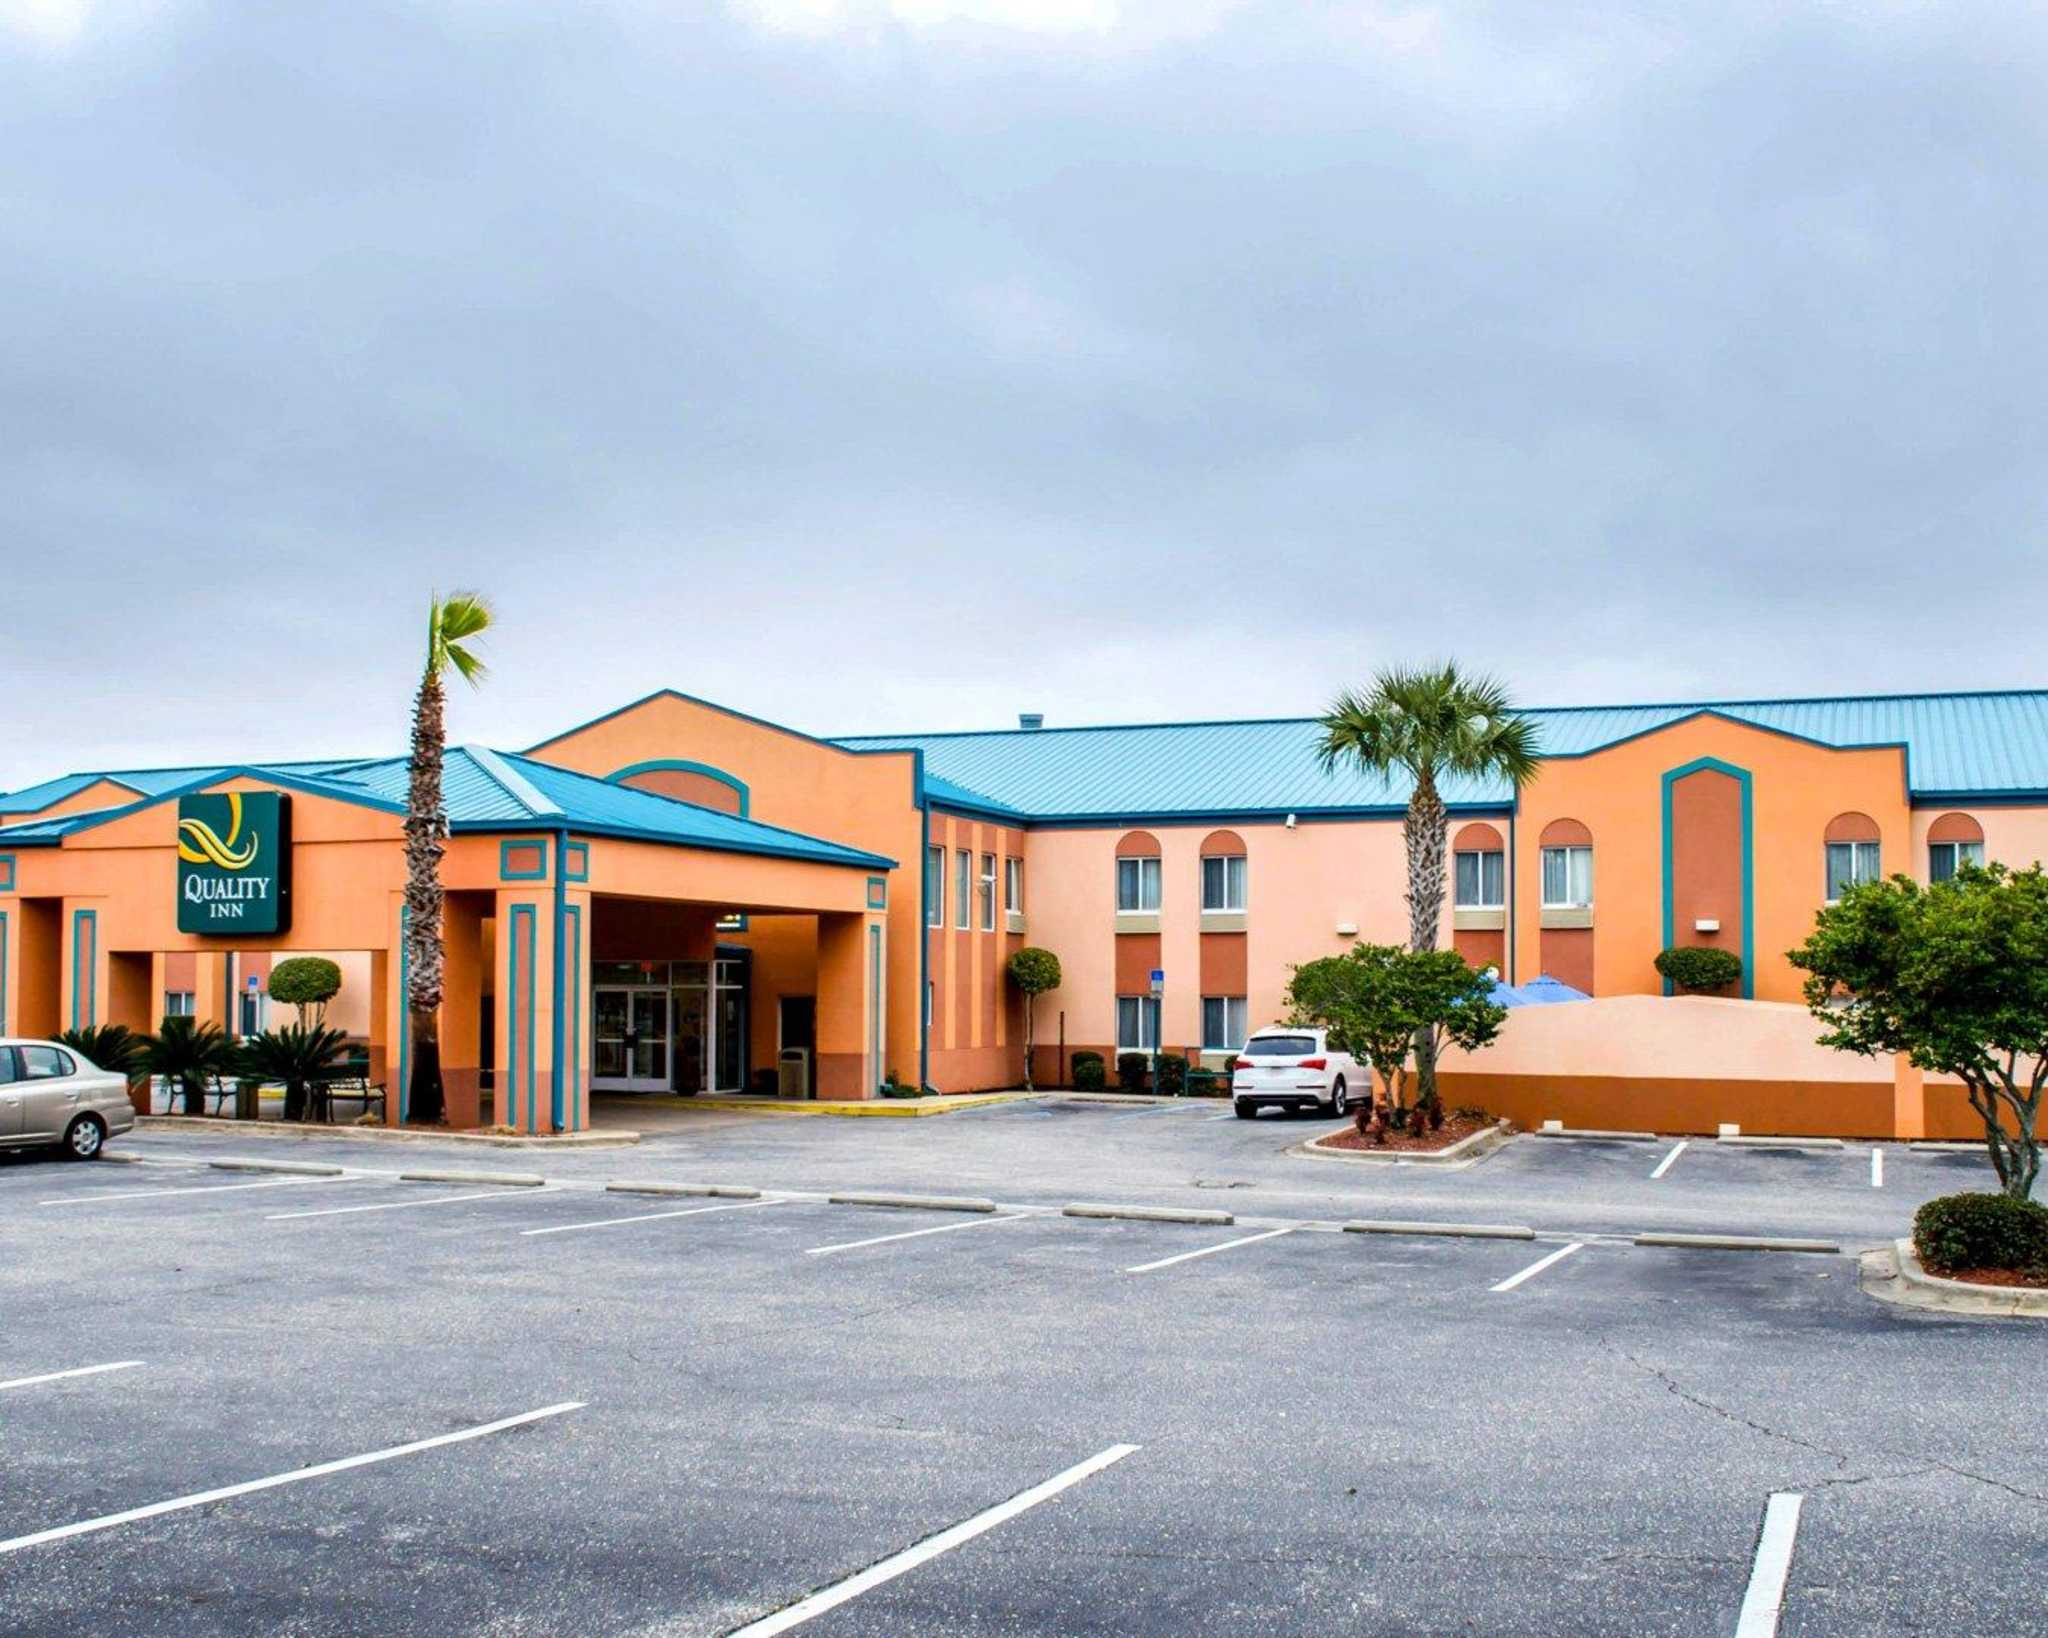 quality inn coupons pensacola fl near me 8coupons. Black Bedroom Furniture Sets. Home Design Ideas